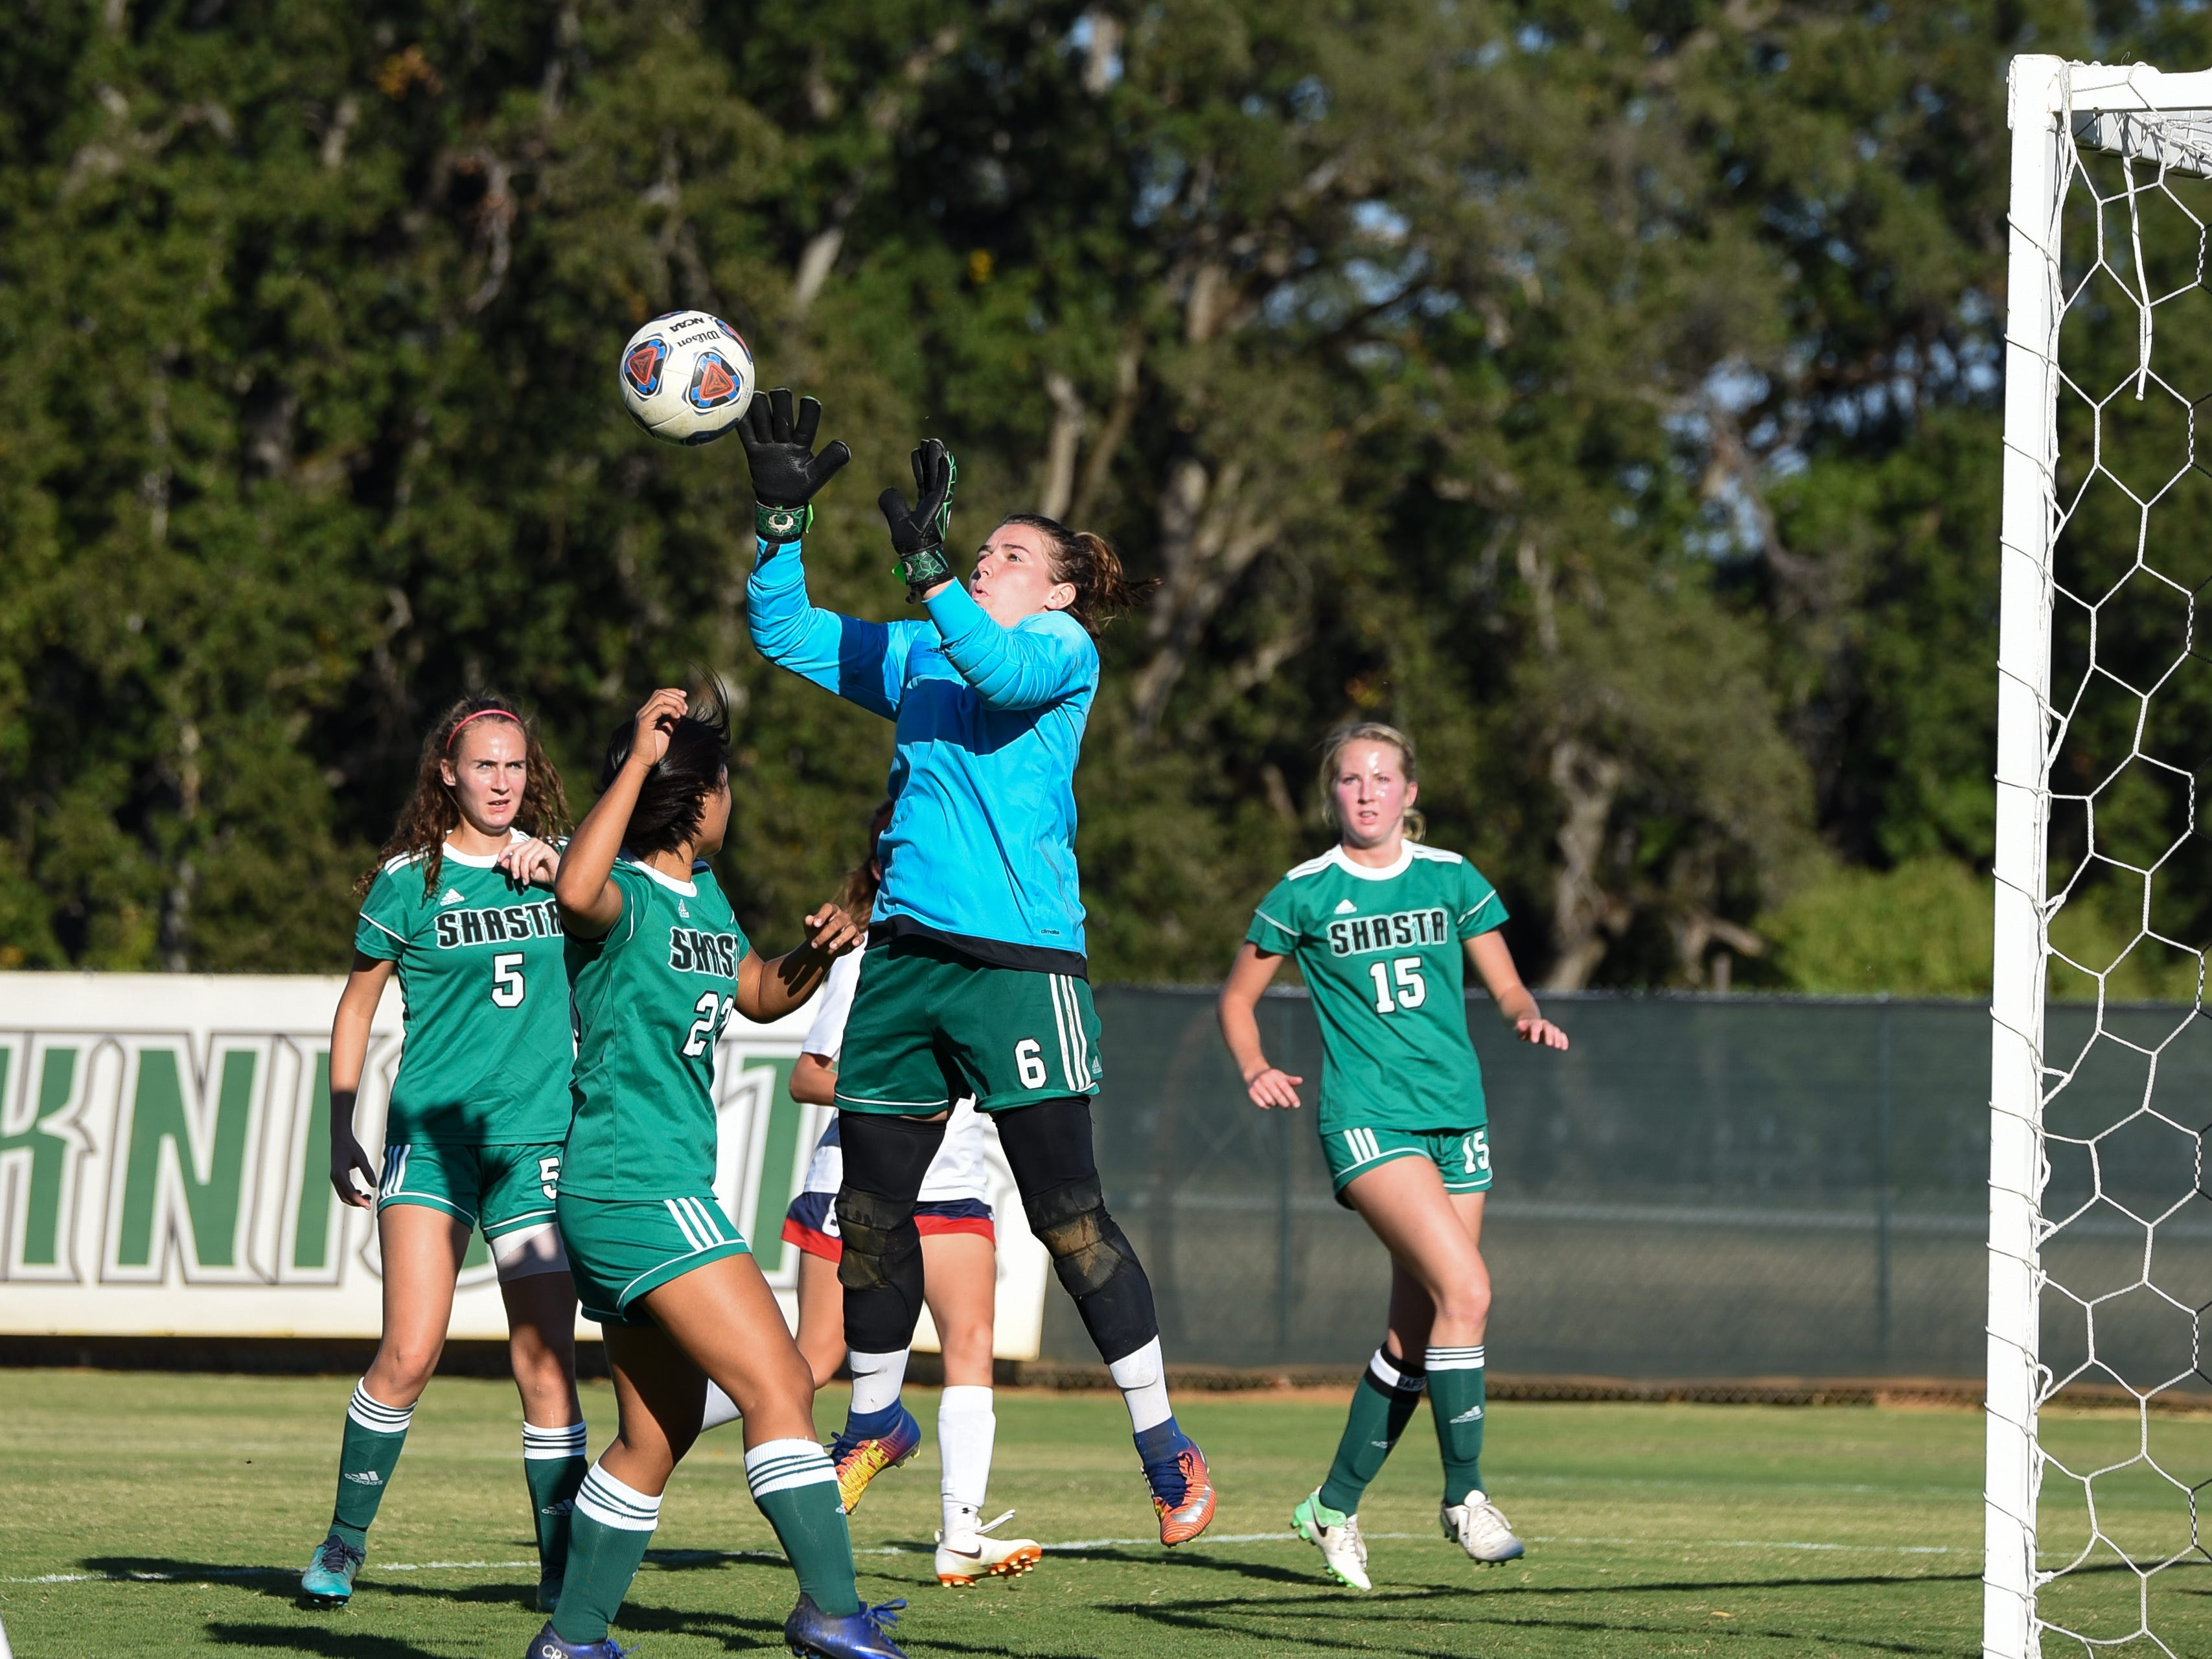 Shasta College goalie Bethany Sather goes to grab the ball during the Knights' 1-1 tie against College of the Siskiyous on Friday, Oct. 12, 2018.